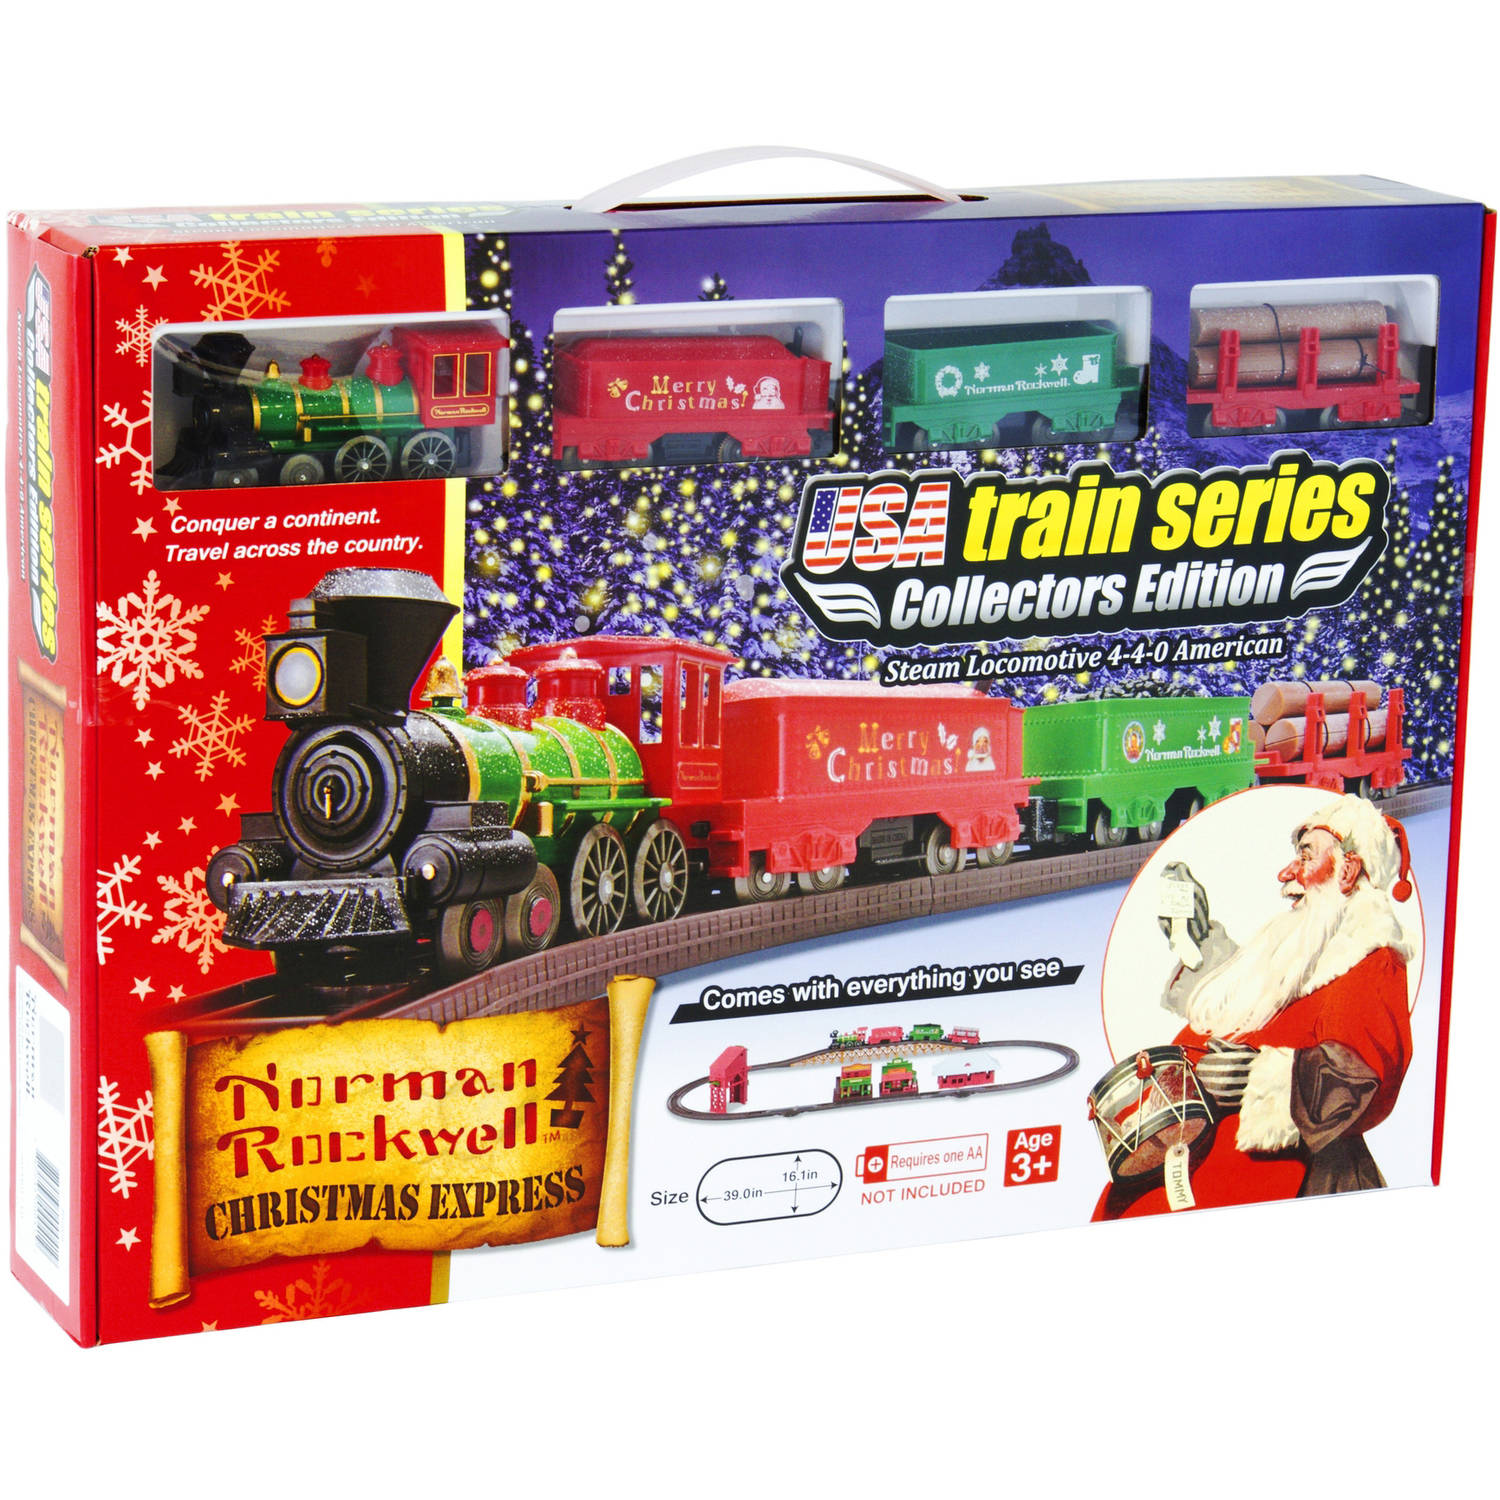 LEC Norman Rockwell Christmas Steam Locomotive American 4-4-0 Battery Operated Train Set